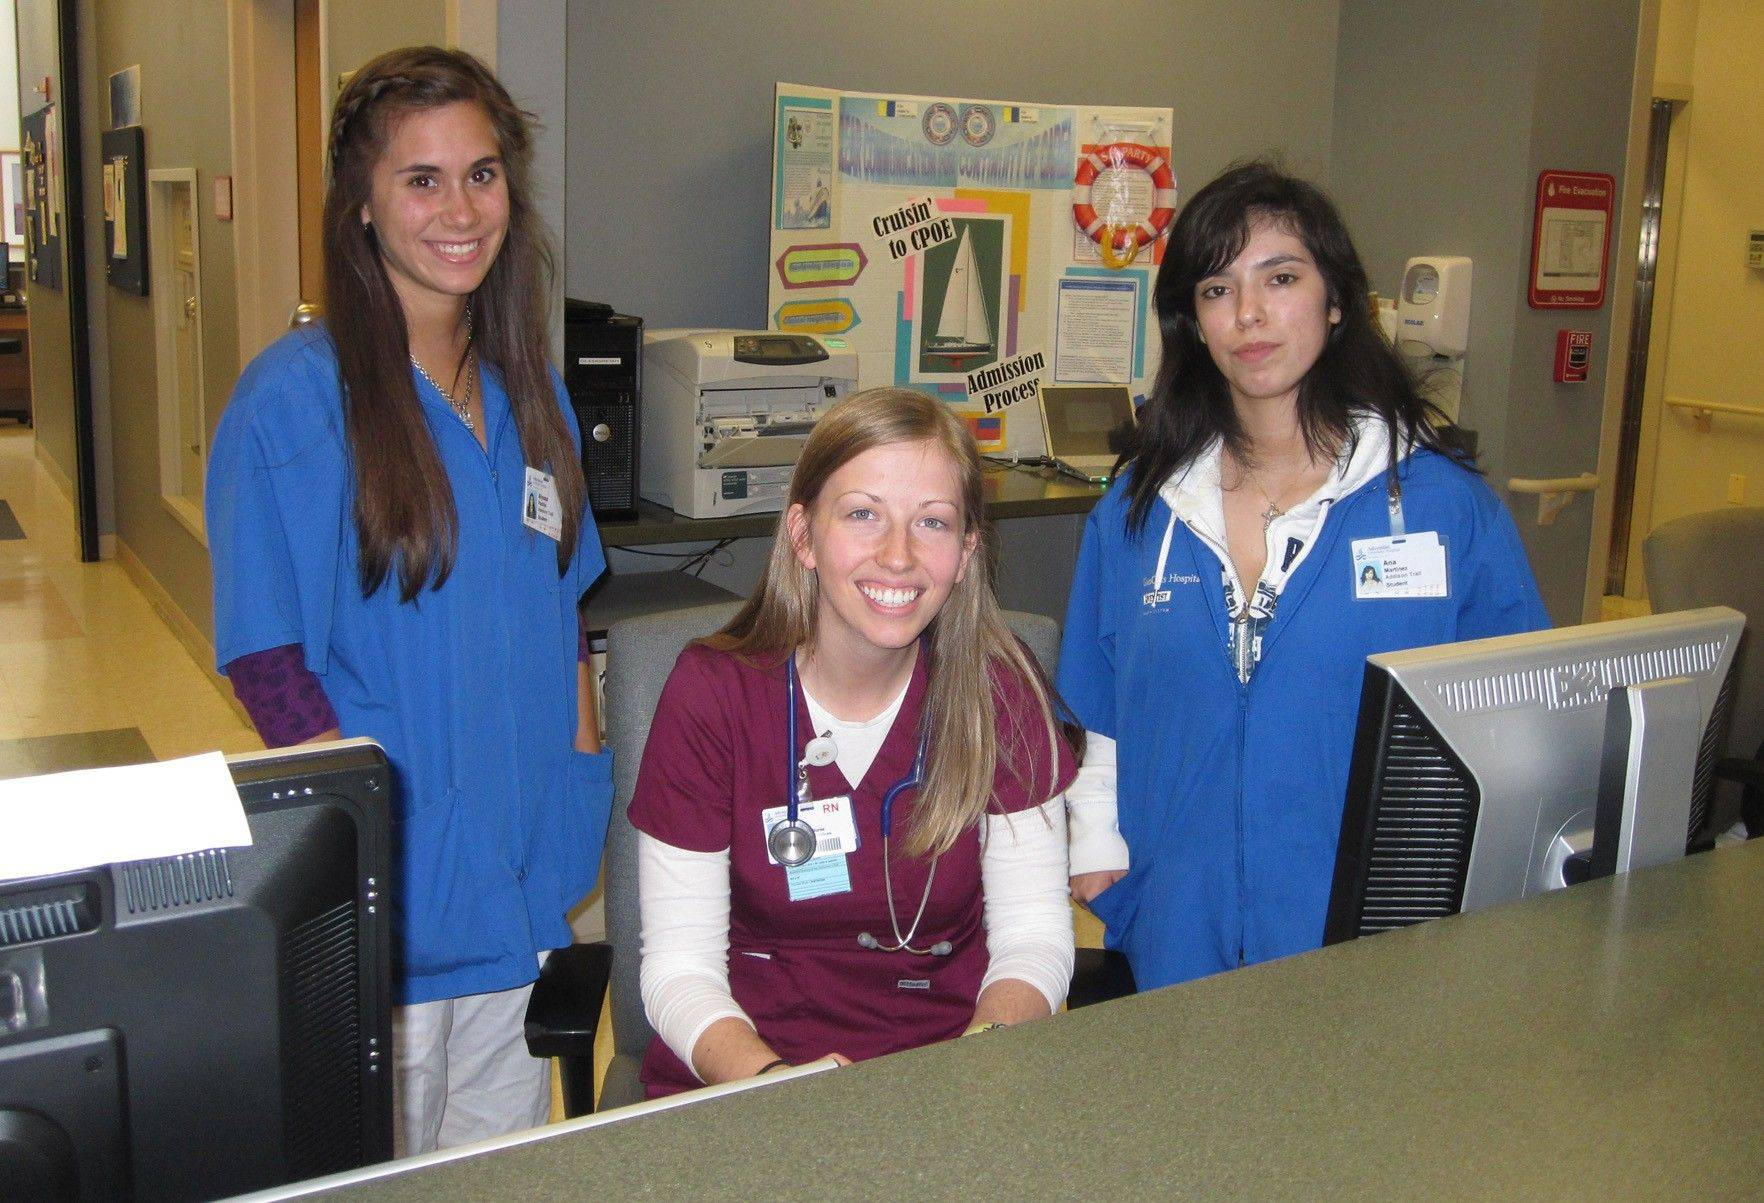 Addison Trail High School students Alyssa Padilla, left, and Ana Martinez, right, learn about career options from Diane Ream, an emergency room nurse at Adventist GlenOaks Hospital. The school and hospital formed a partnership 20 years ago to give students real-world exposure to healthcare careers.